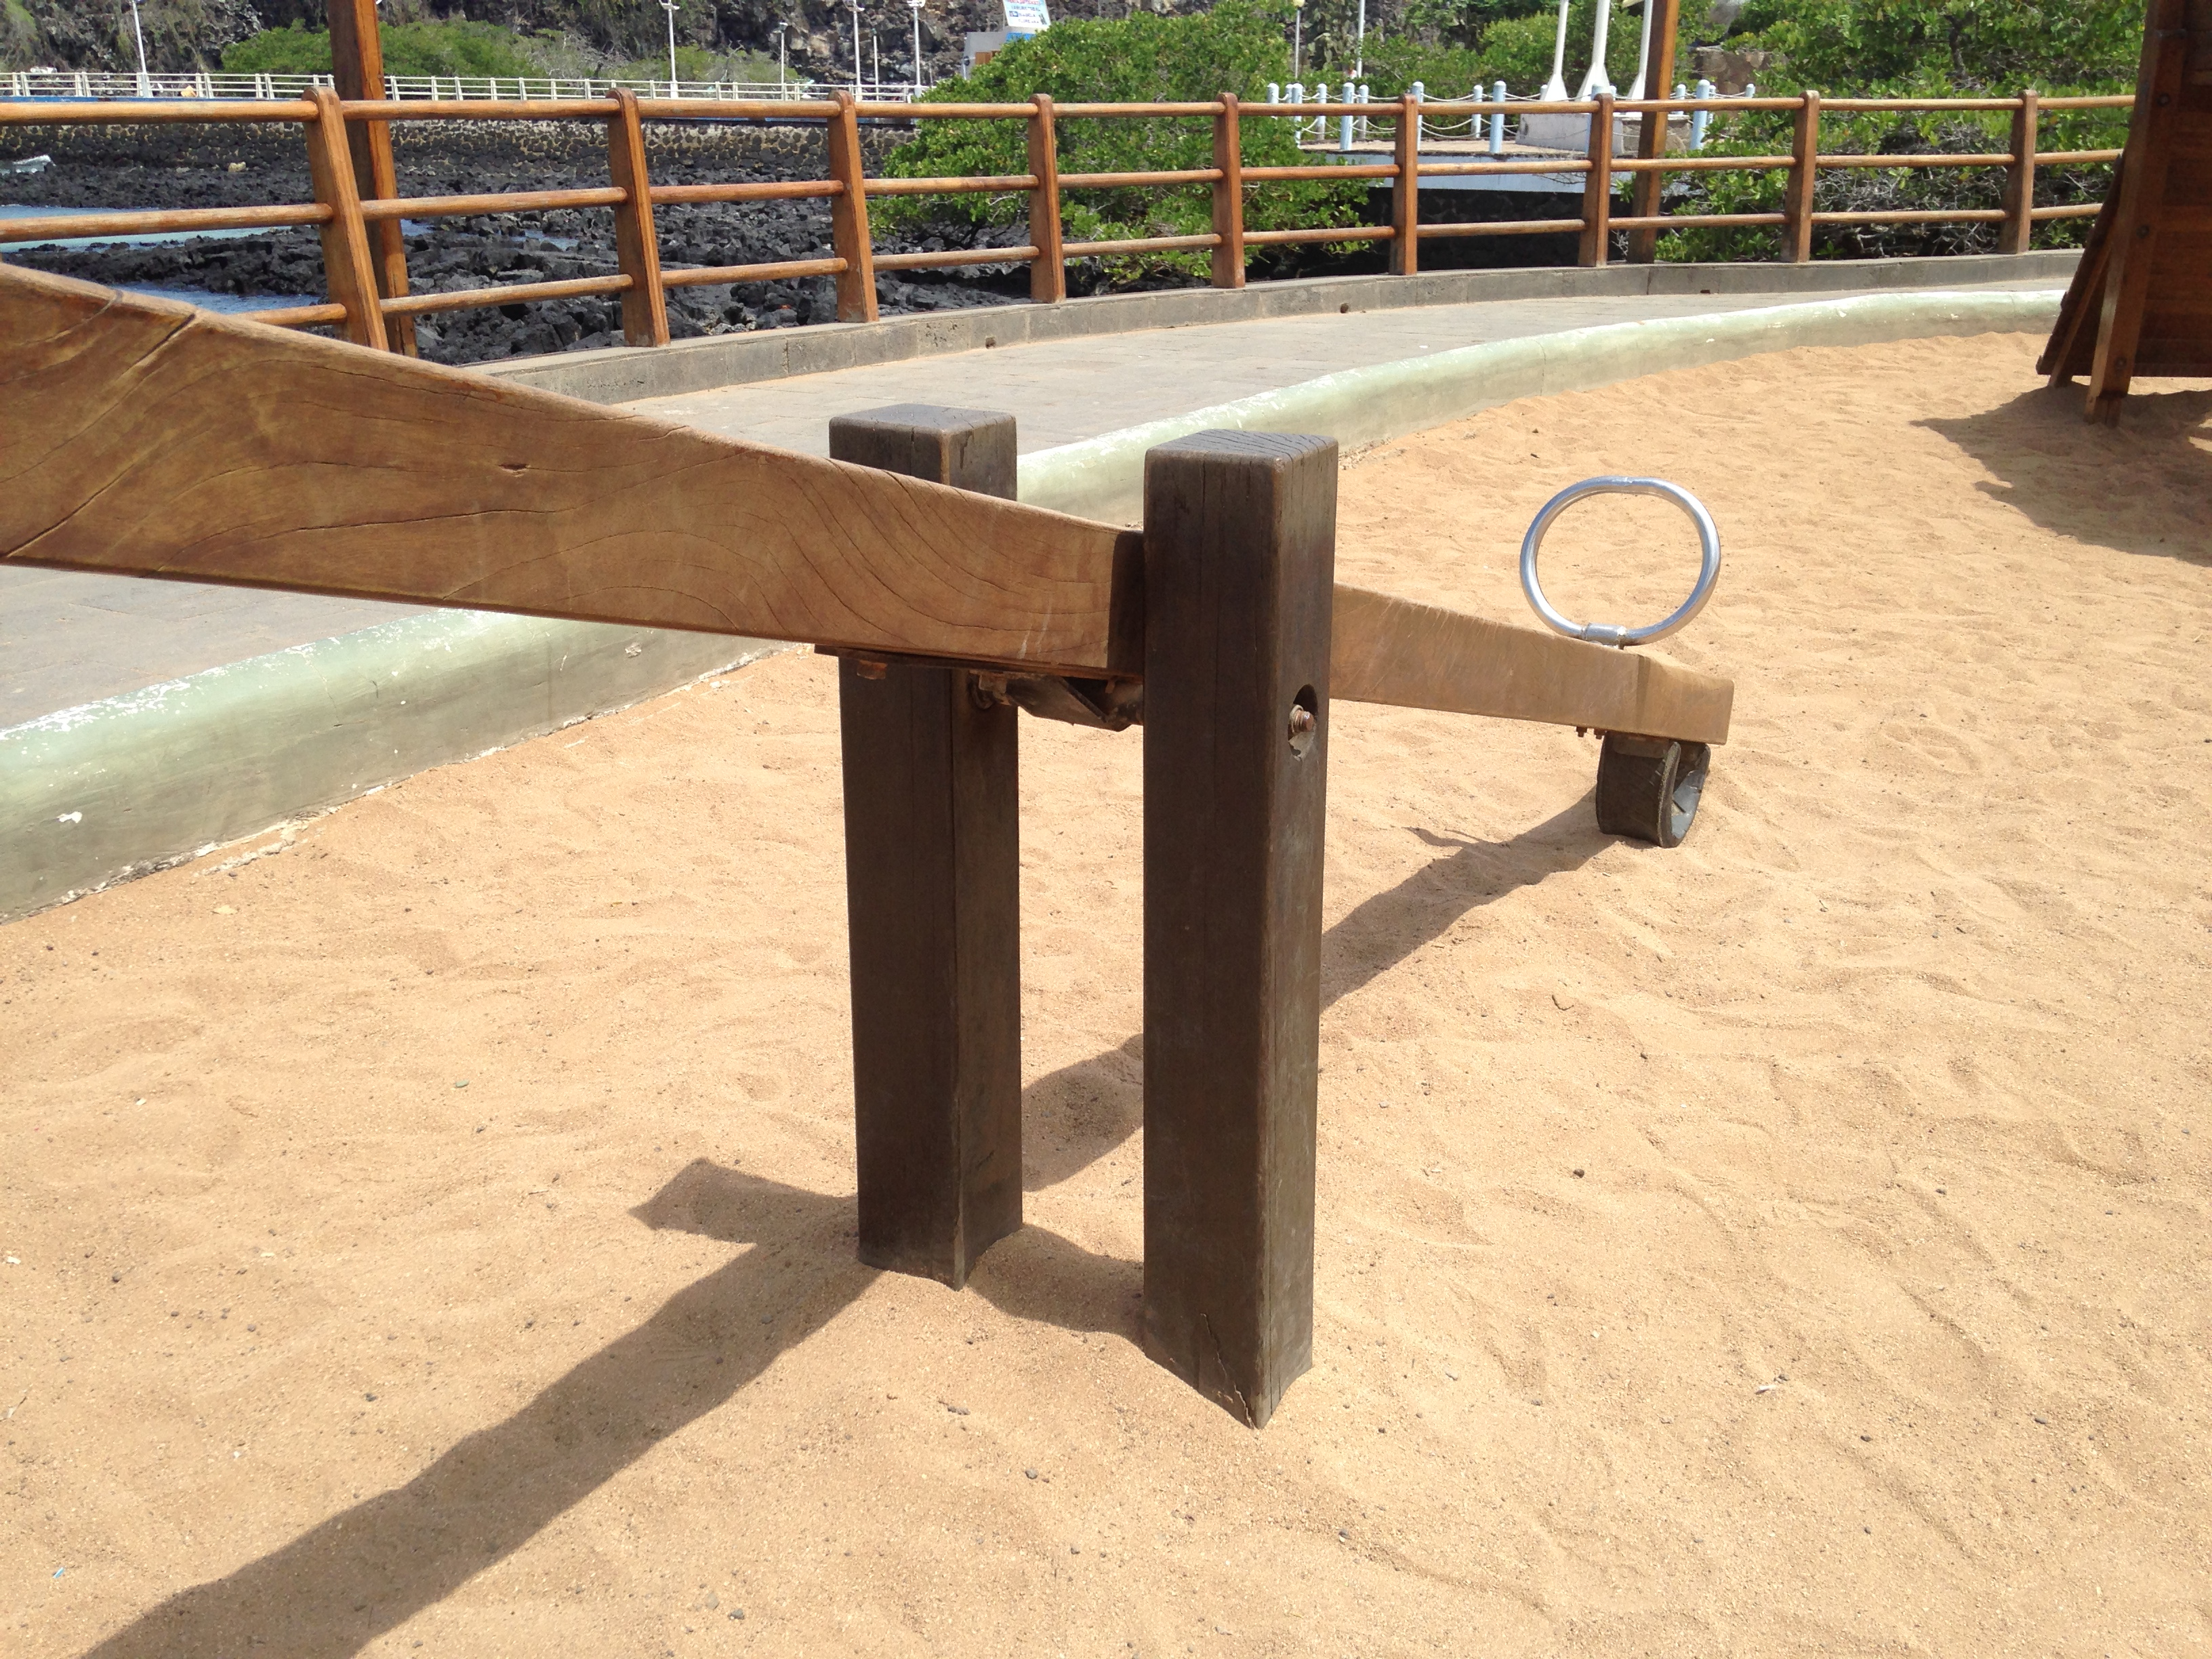 Dog Agility Teeter Totter Plans | Teeter Totter for Back | Teeter Totter